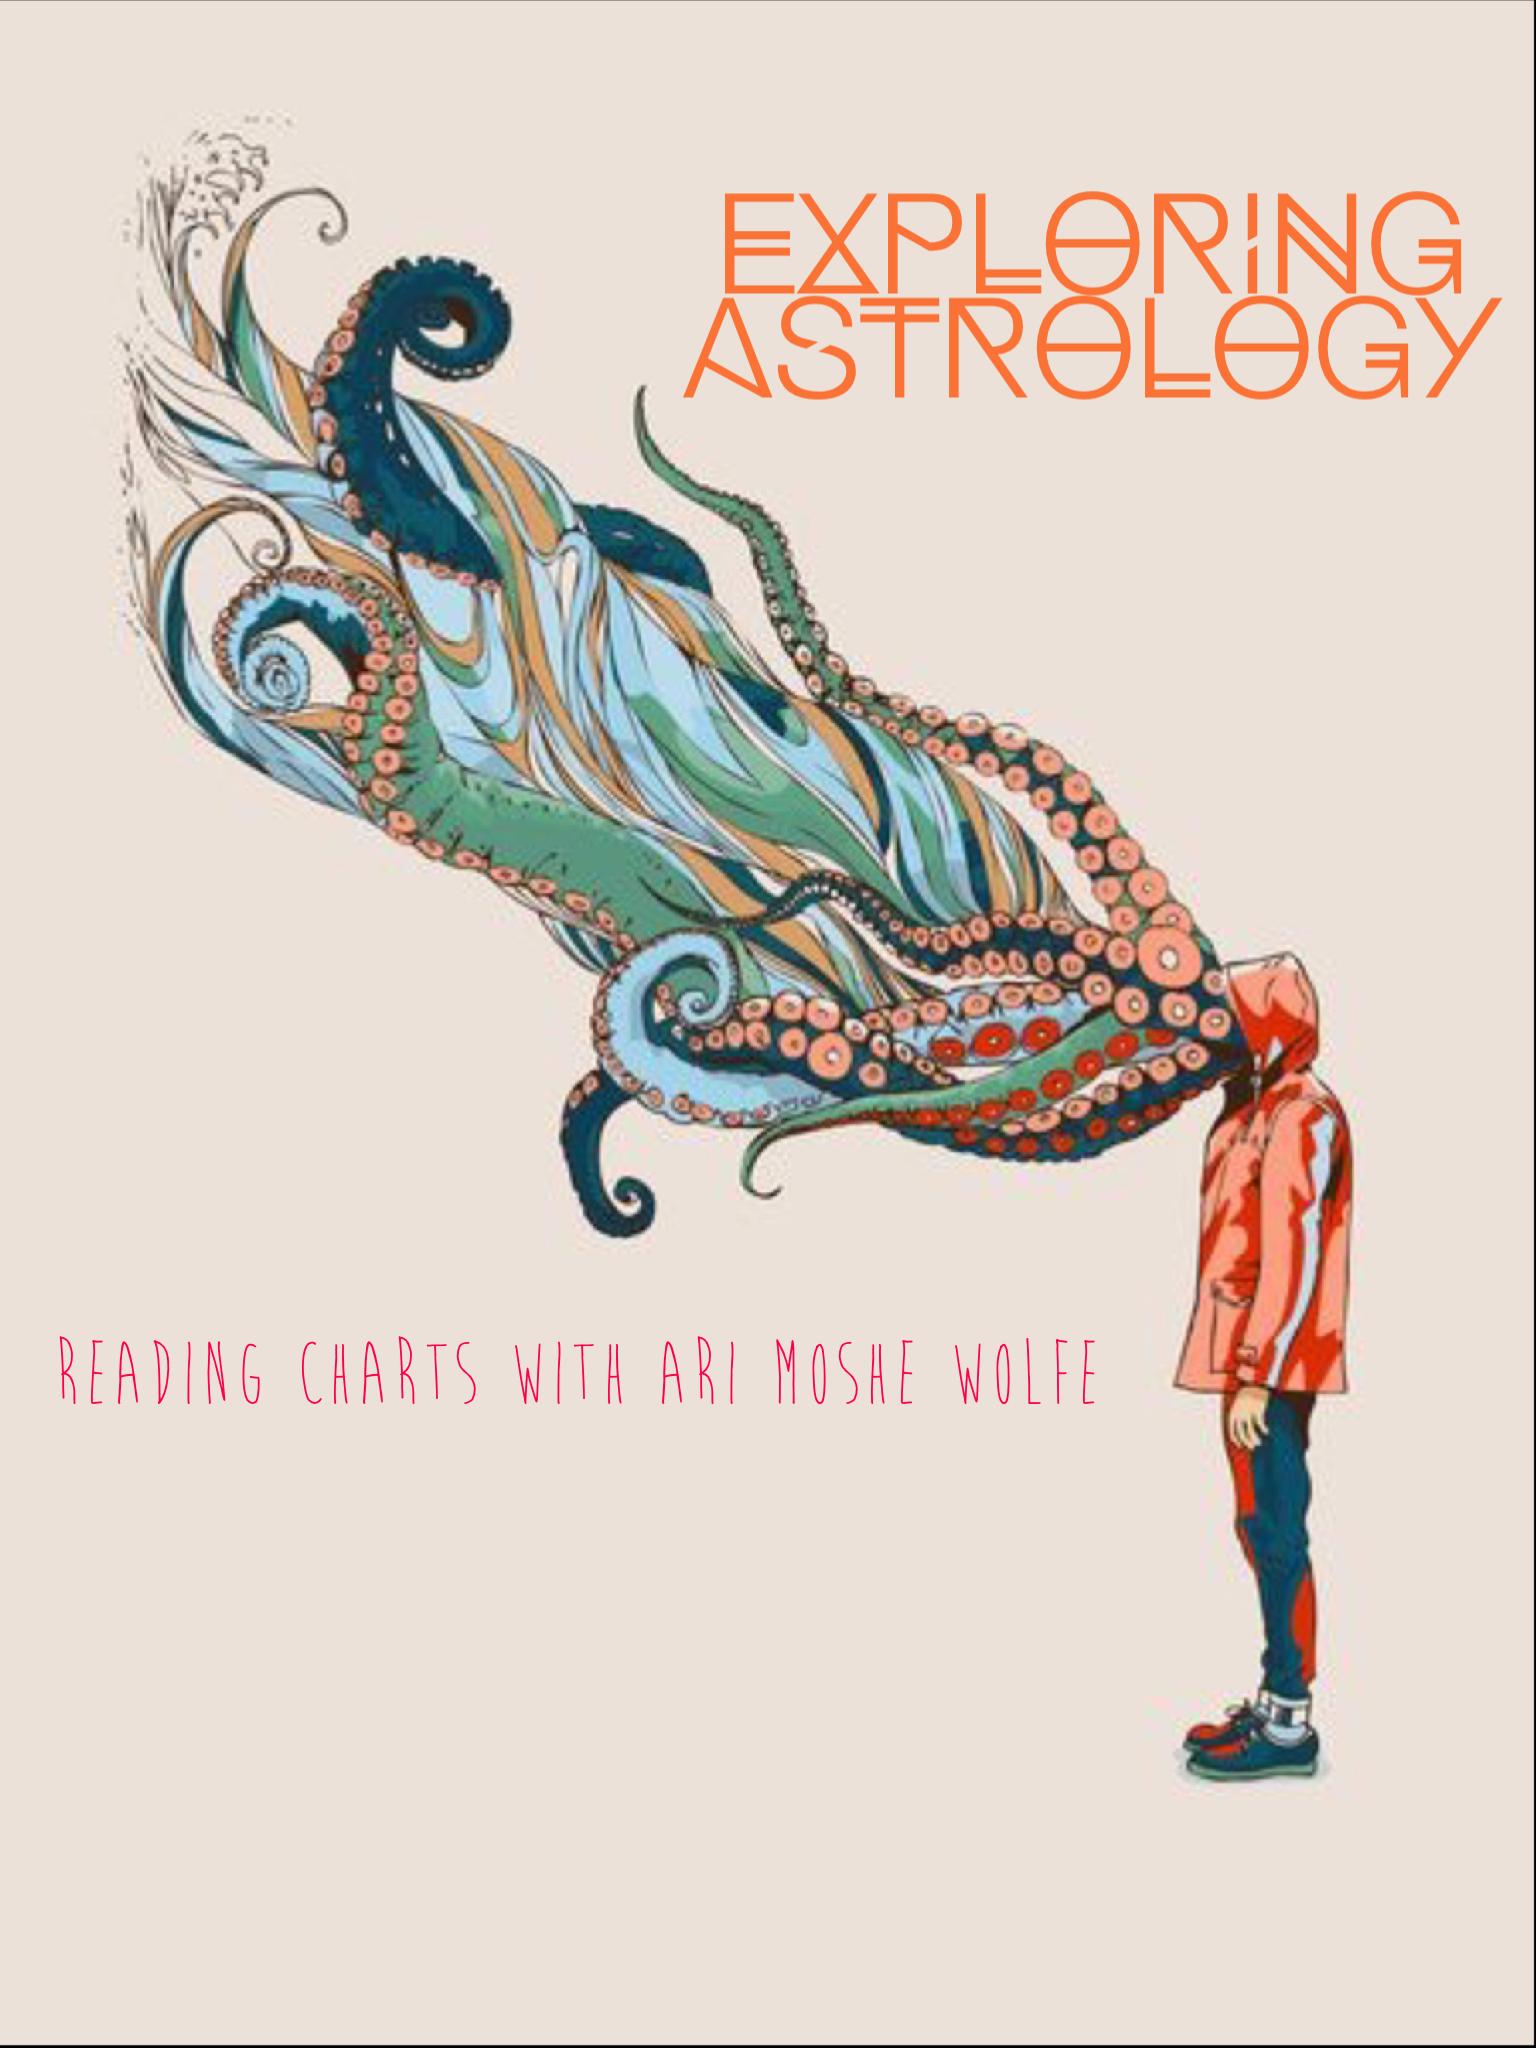 Exploring Astrology: Reading Charts with Ari Moshe Wolfe